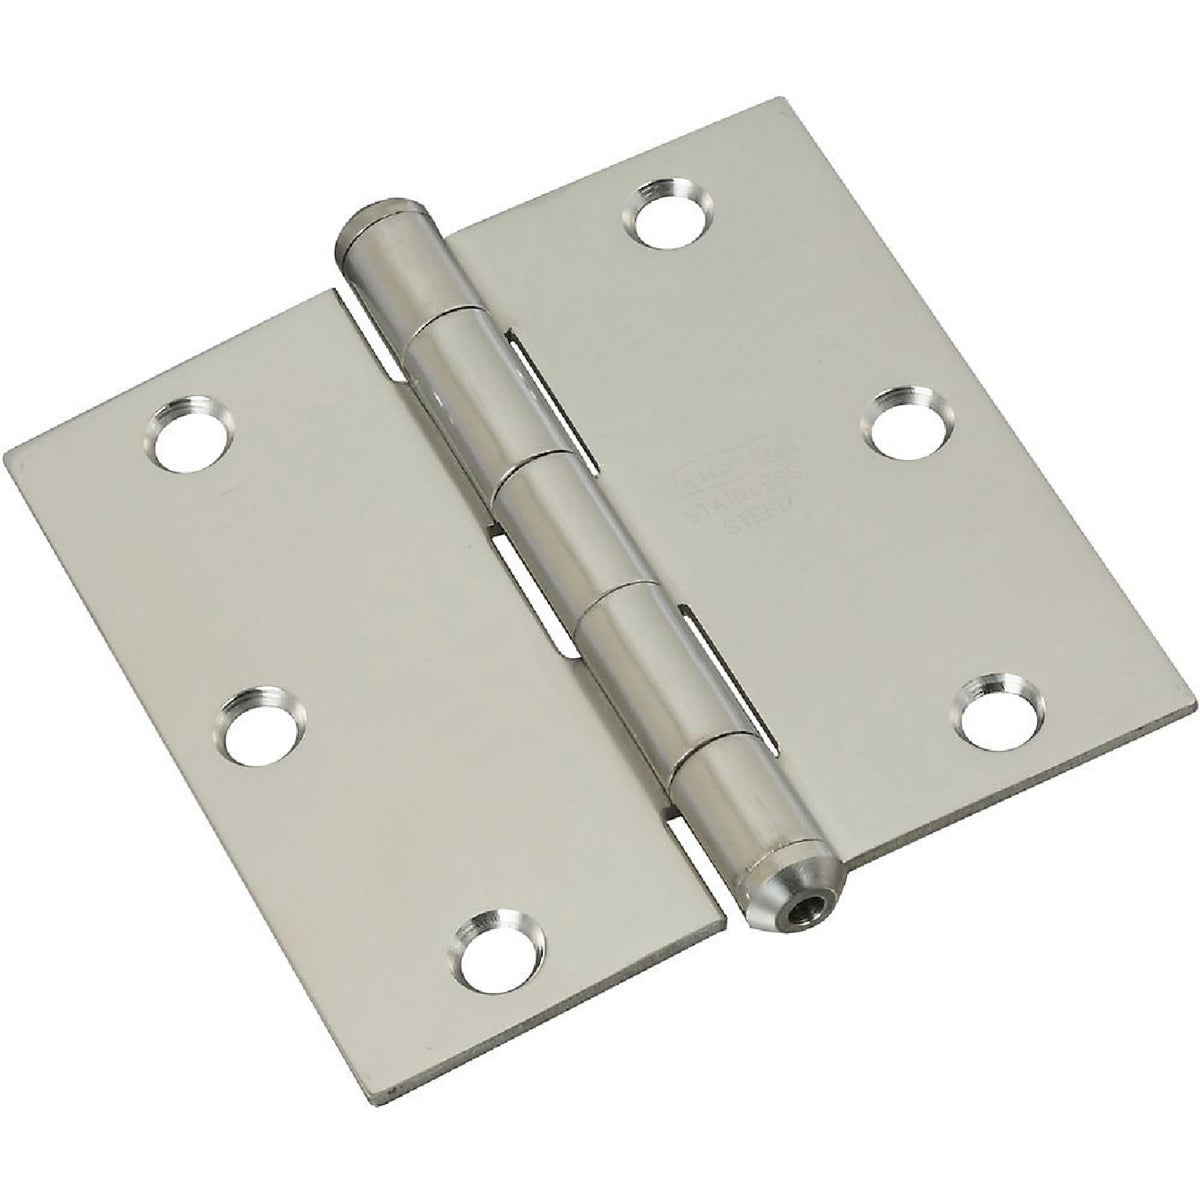 "3-1/2"" DOOR HINGE - N225920 by National Mfg Co"